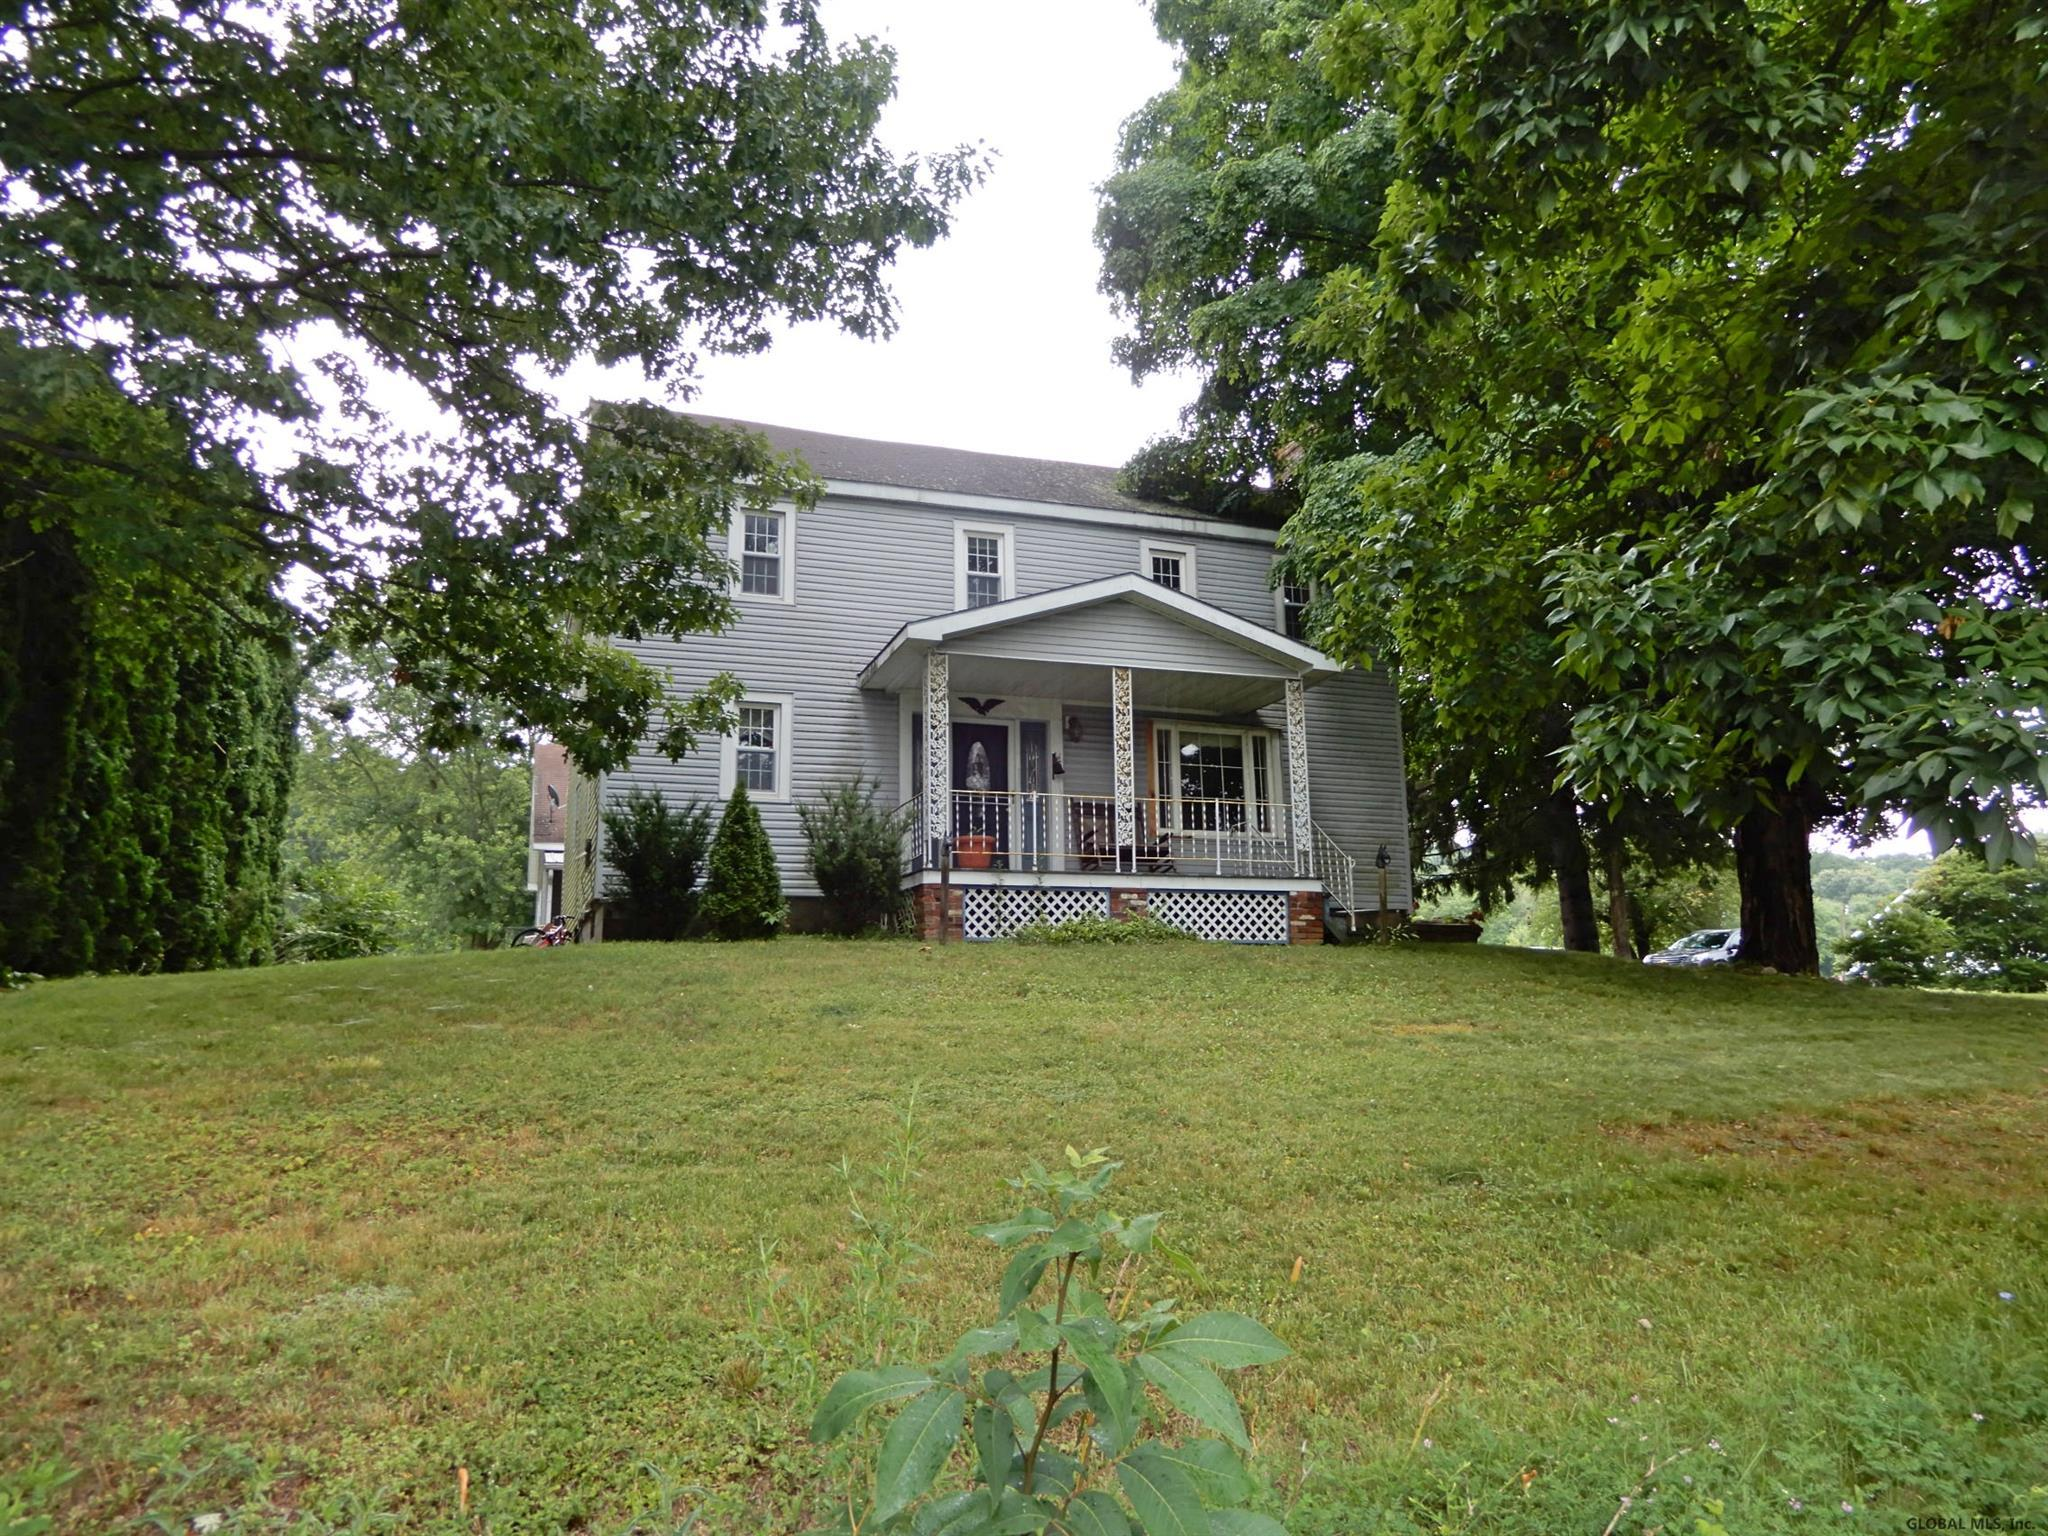 Featured: 2768 River Road – Schaghticoke, NY 12121